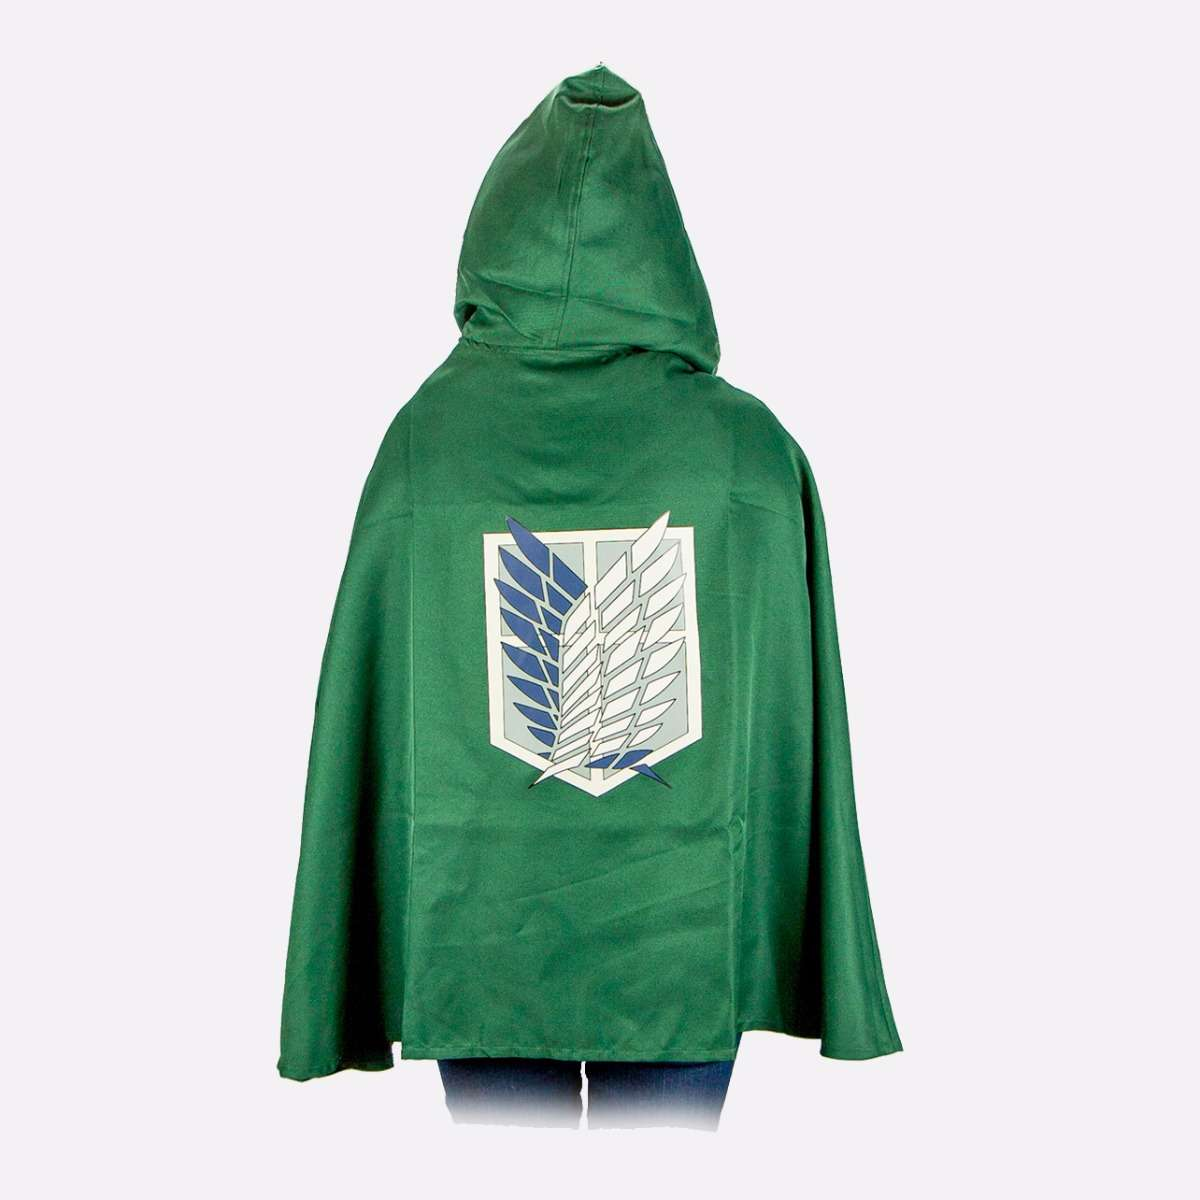 Scouting Legion Hooded Cloak apparel